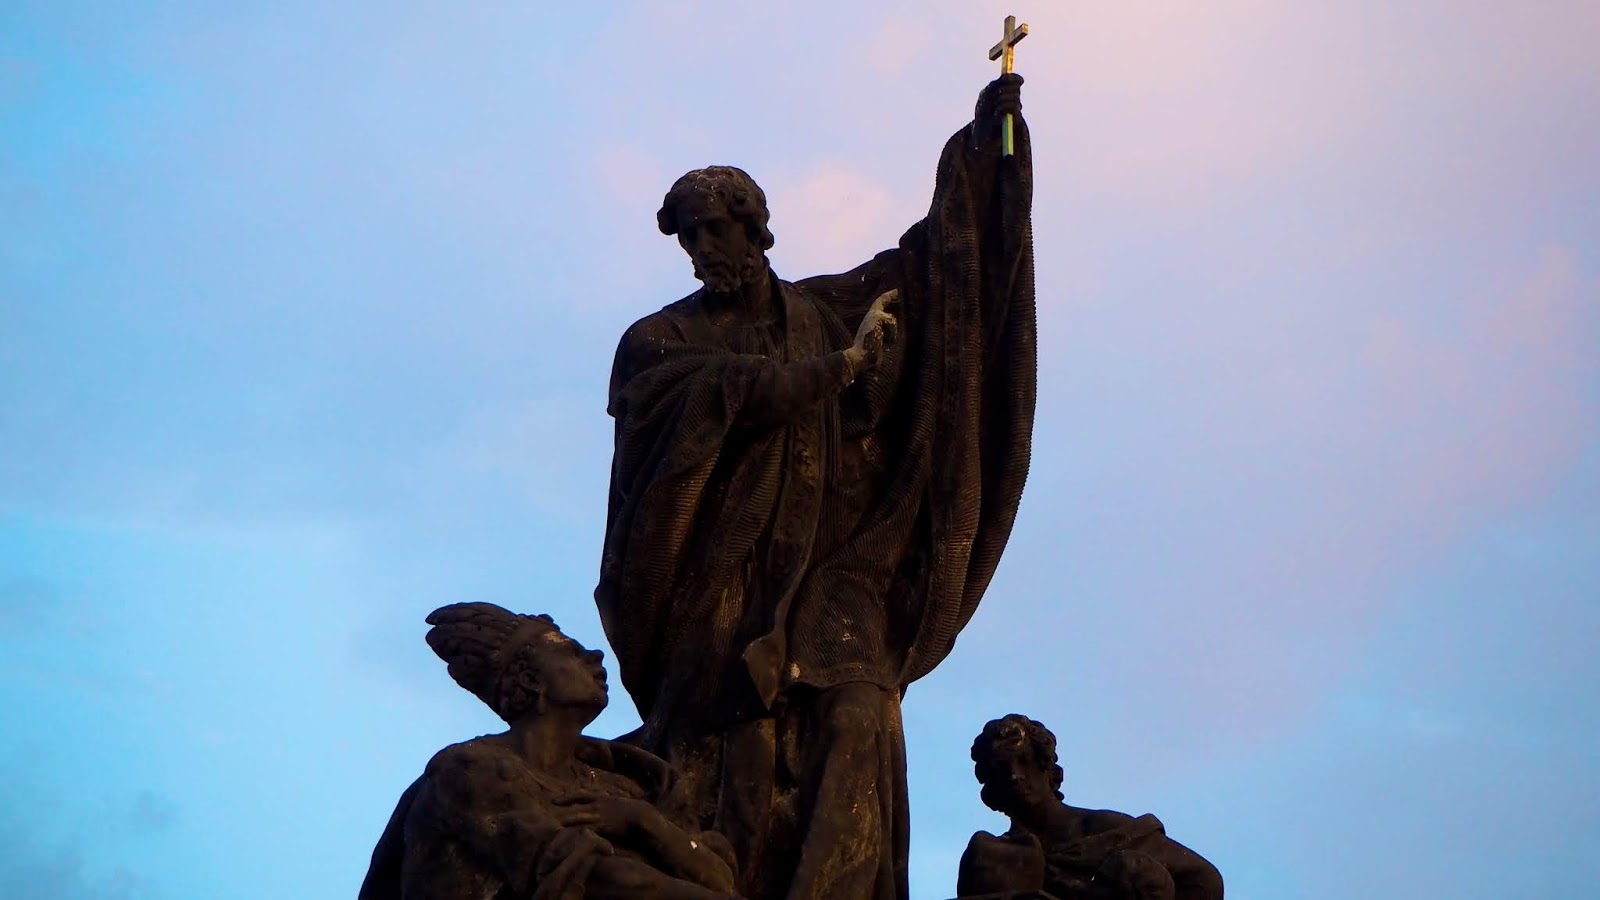 Statue of saints on Charles Bridge, Prague